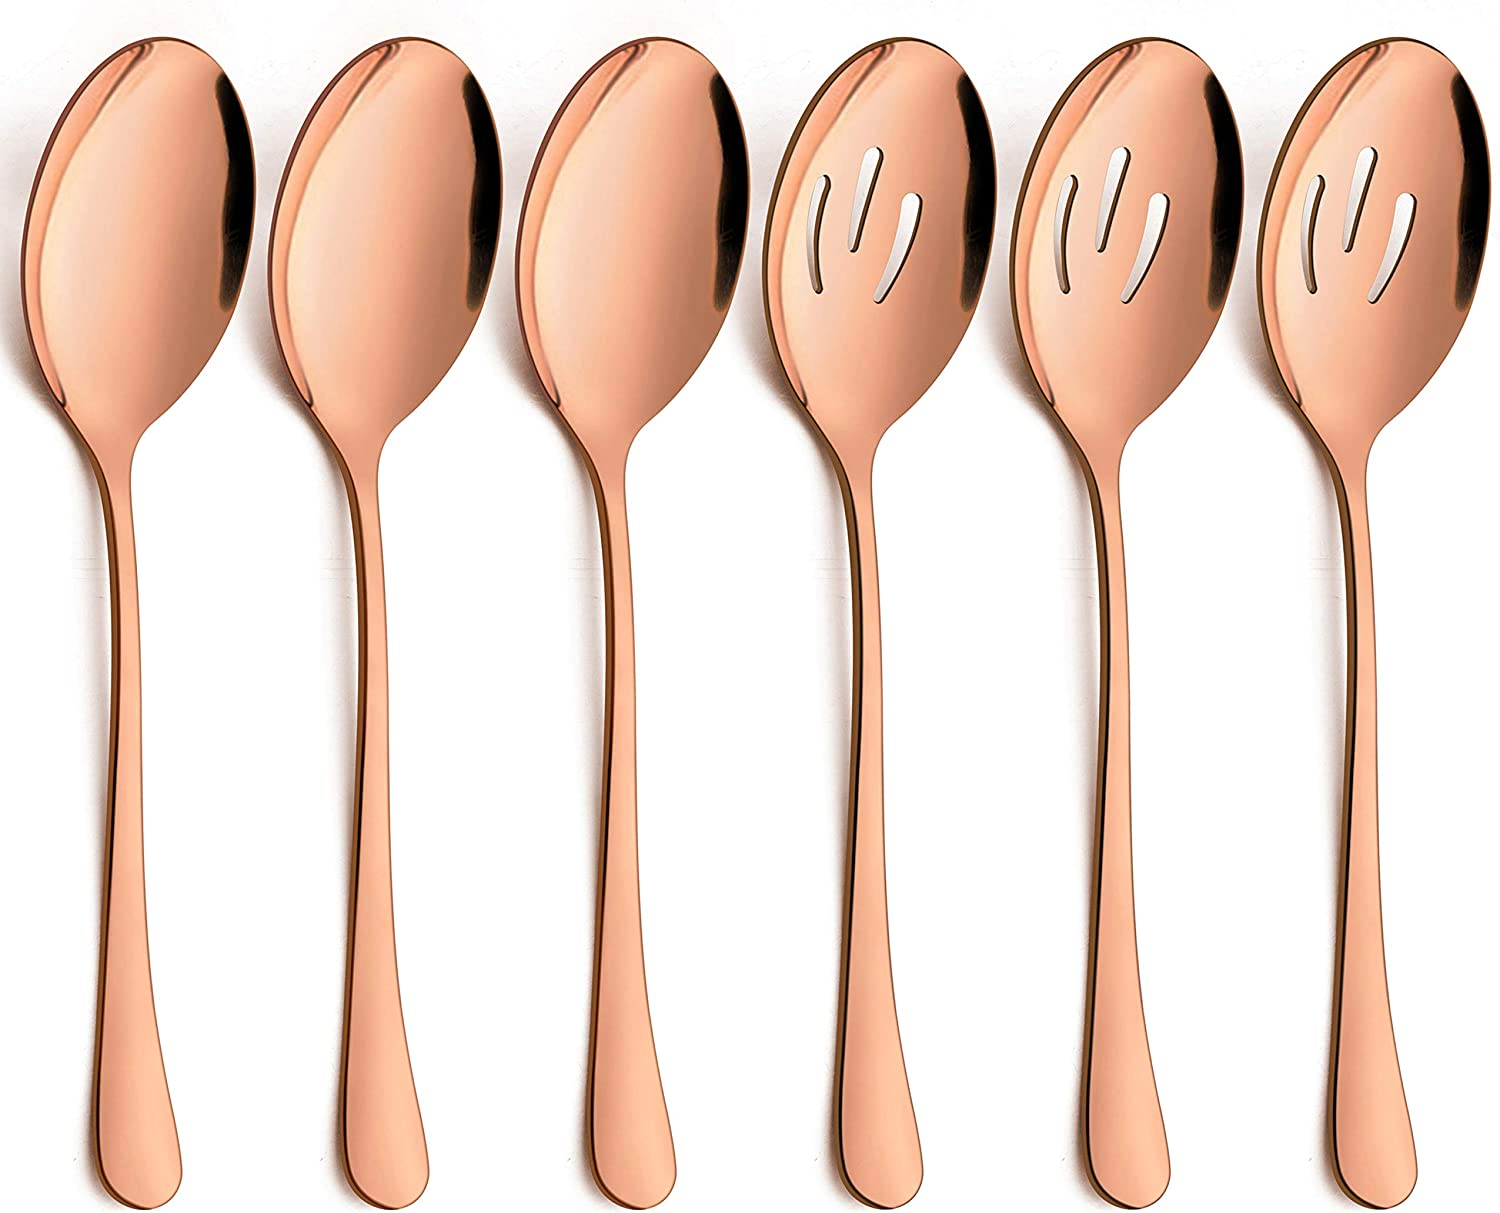 LIANYU 6-Piece Large Copper Serving Spoons, Copper Slotted Serving Spoons, Stainless Steel Rose Gold Serving Utensils for Party Buffet Restaurant Banquet Dinner Catering, Dishwasher Safe